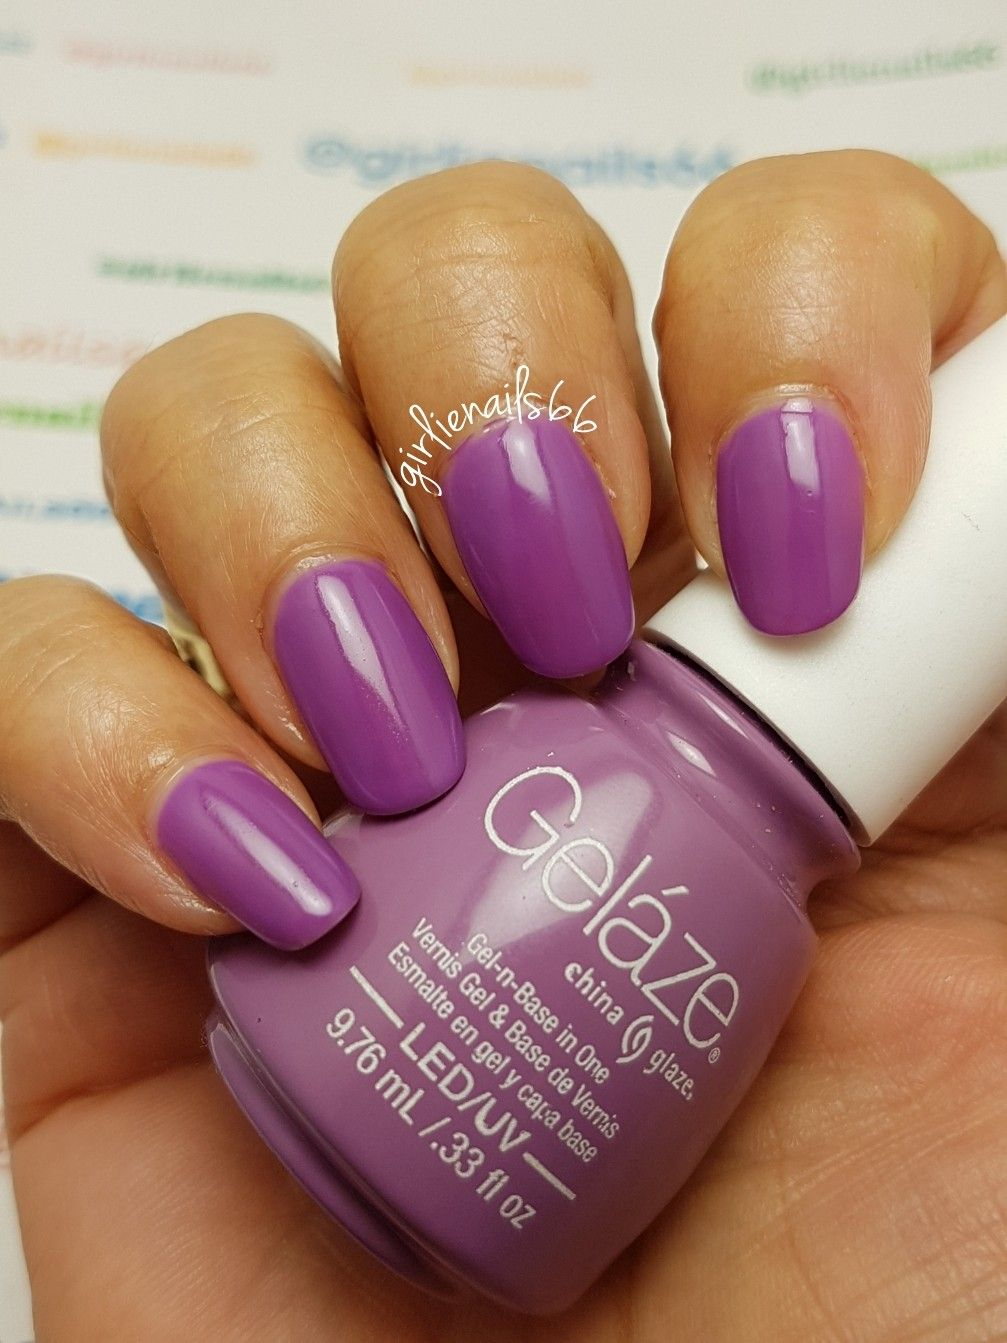 Gelaze Gel polish Purple no name sticker missing | Nail designs by ...